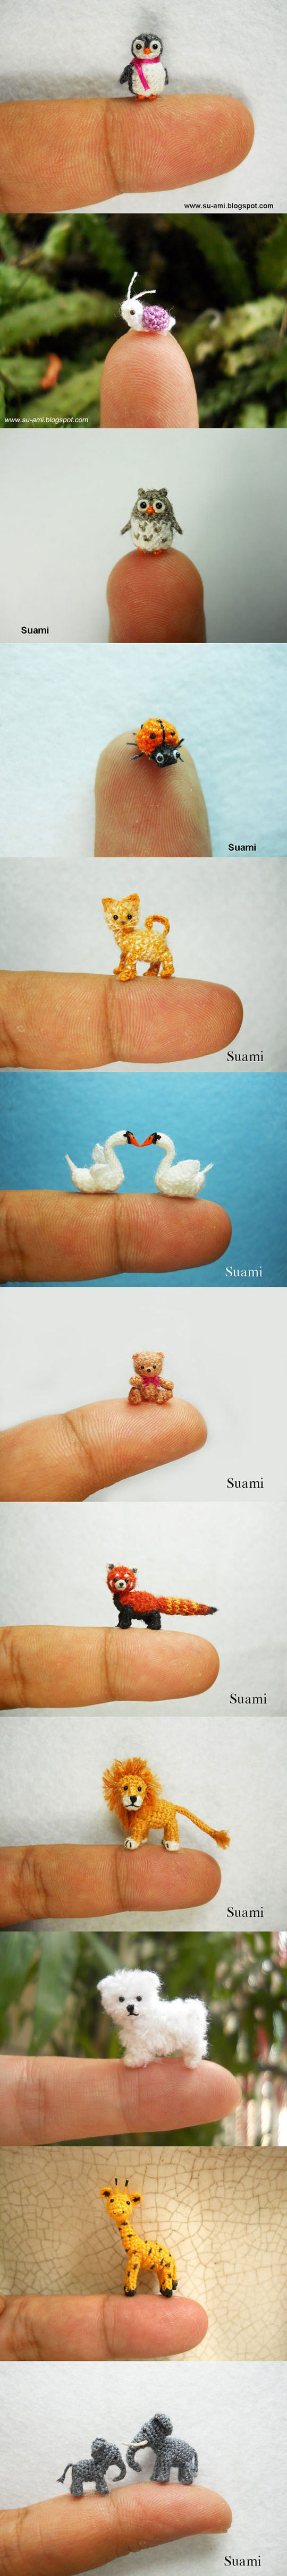 The Tiniest Animals By Suami